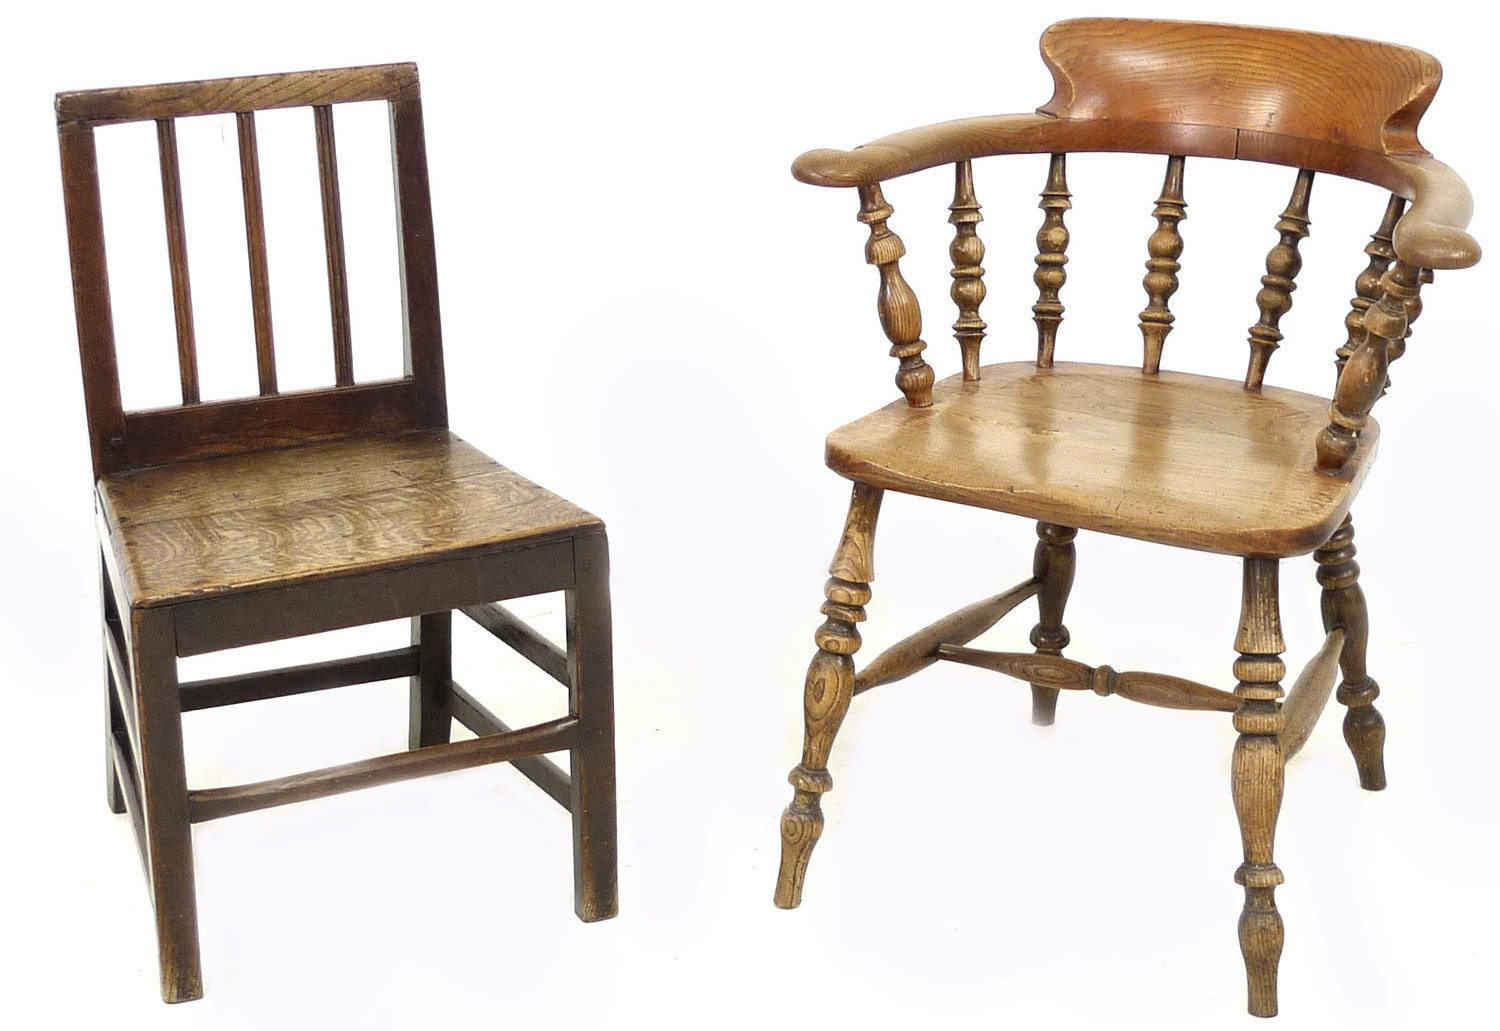 A Scandinavian oak nursery chair, with three rail back, 44 by 48 by 78cm high, together with a